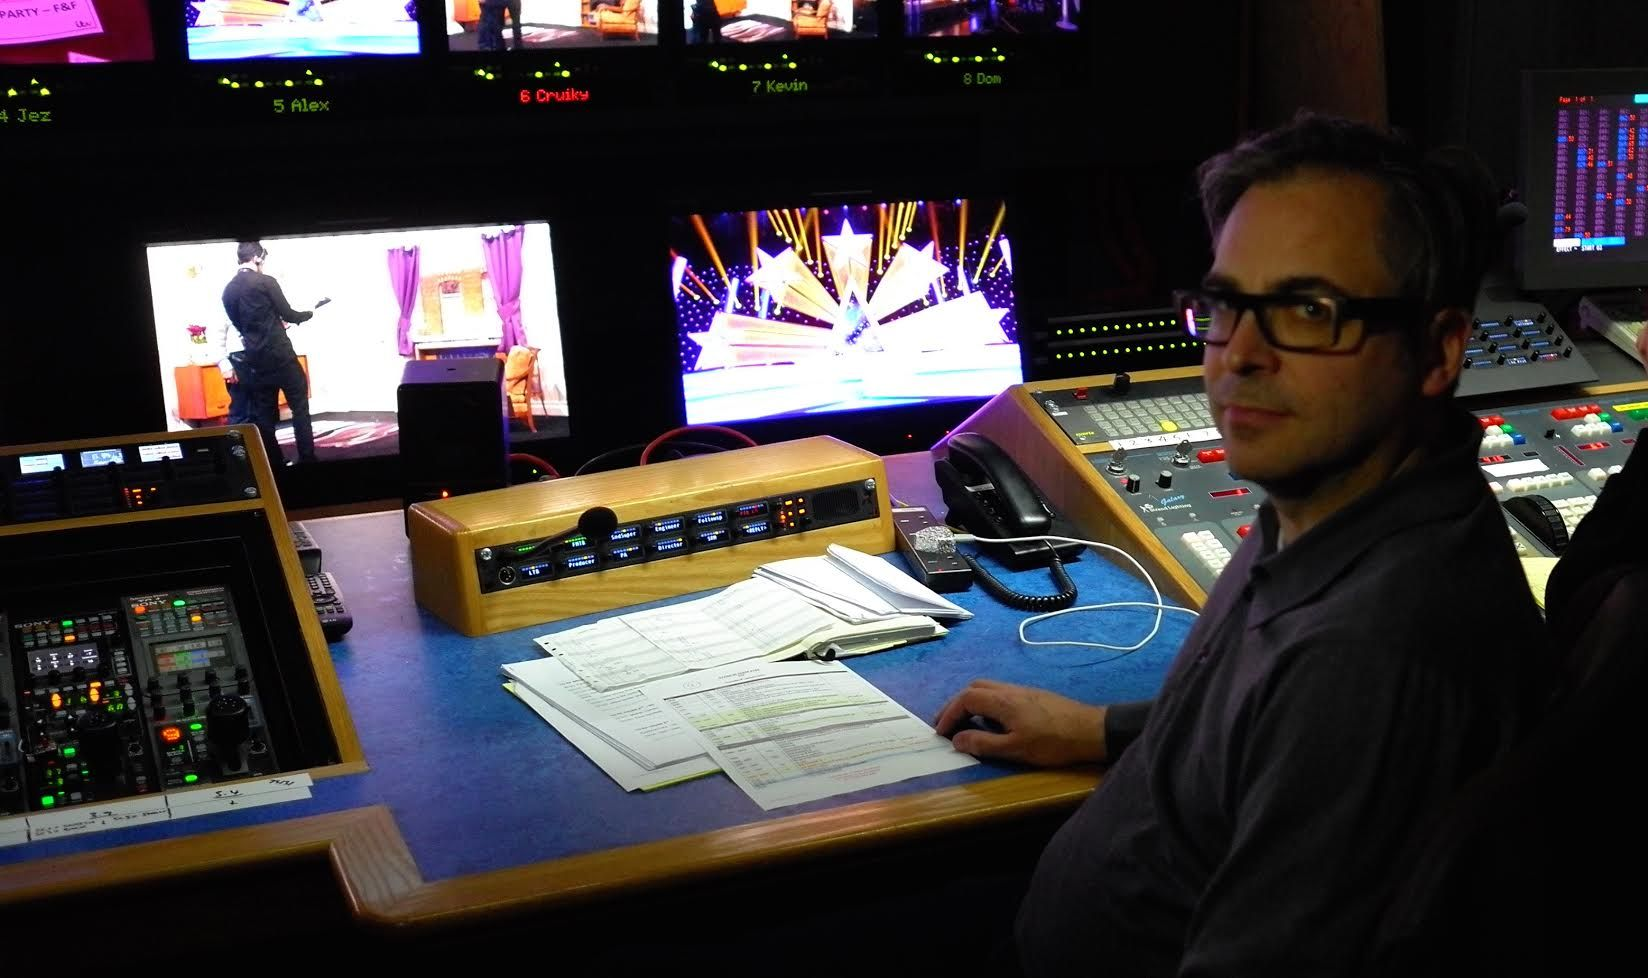 Lighting design today interview with max conwell from naked eye